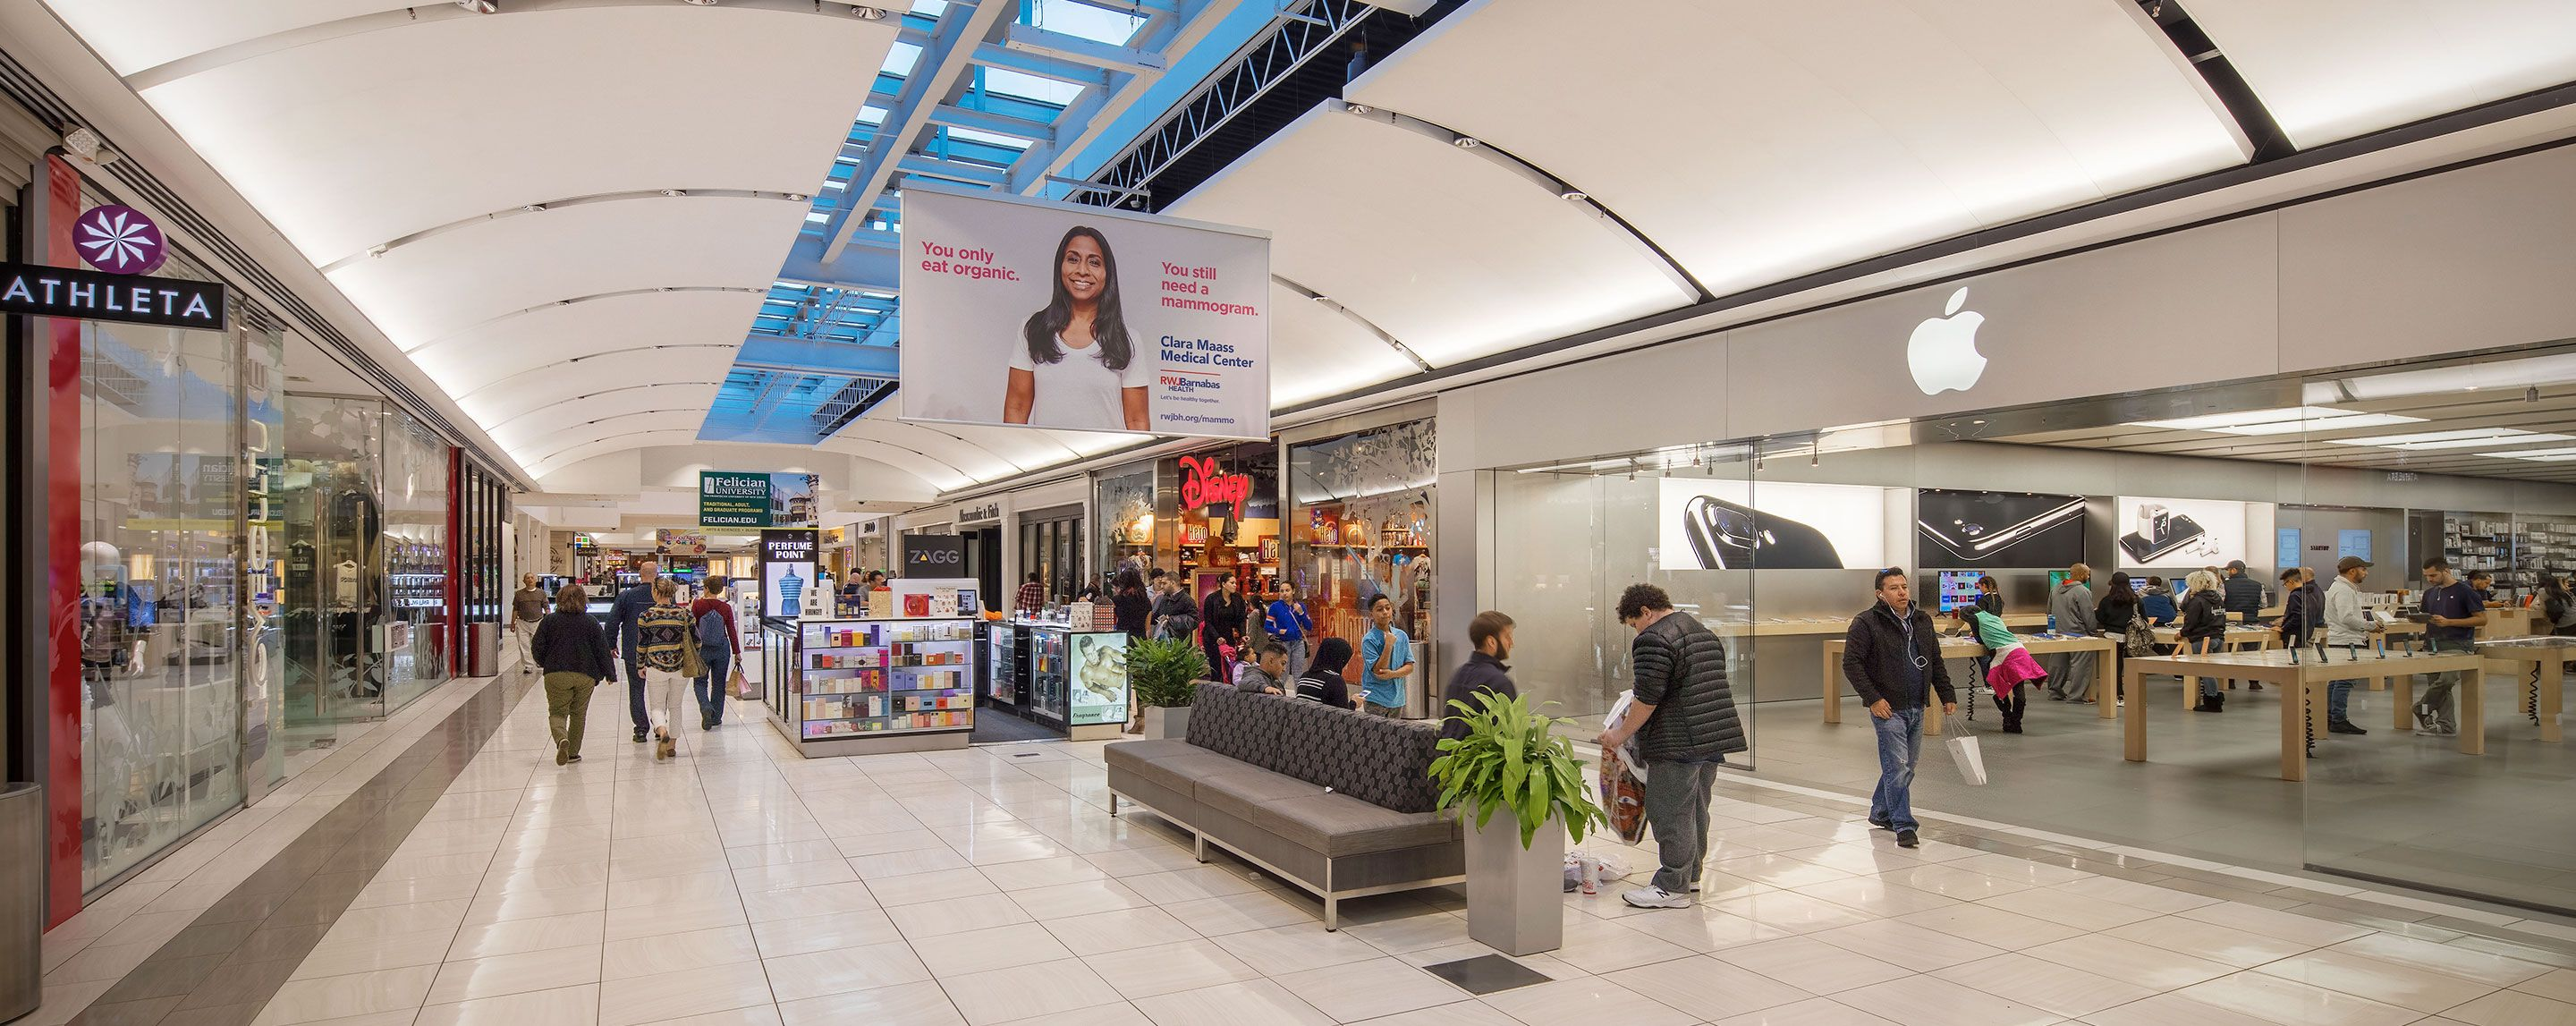 A mall with several people and the stores Athleta and Apple visible.